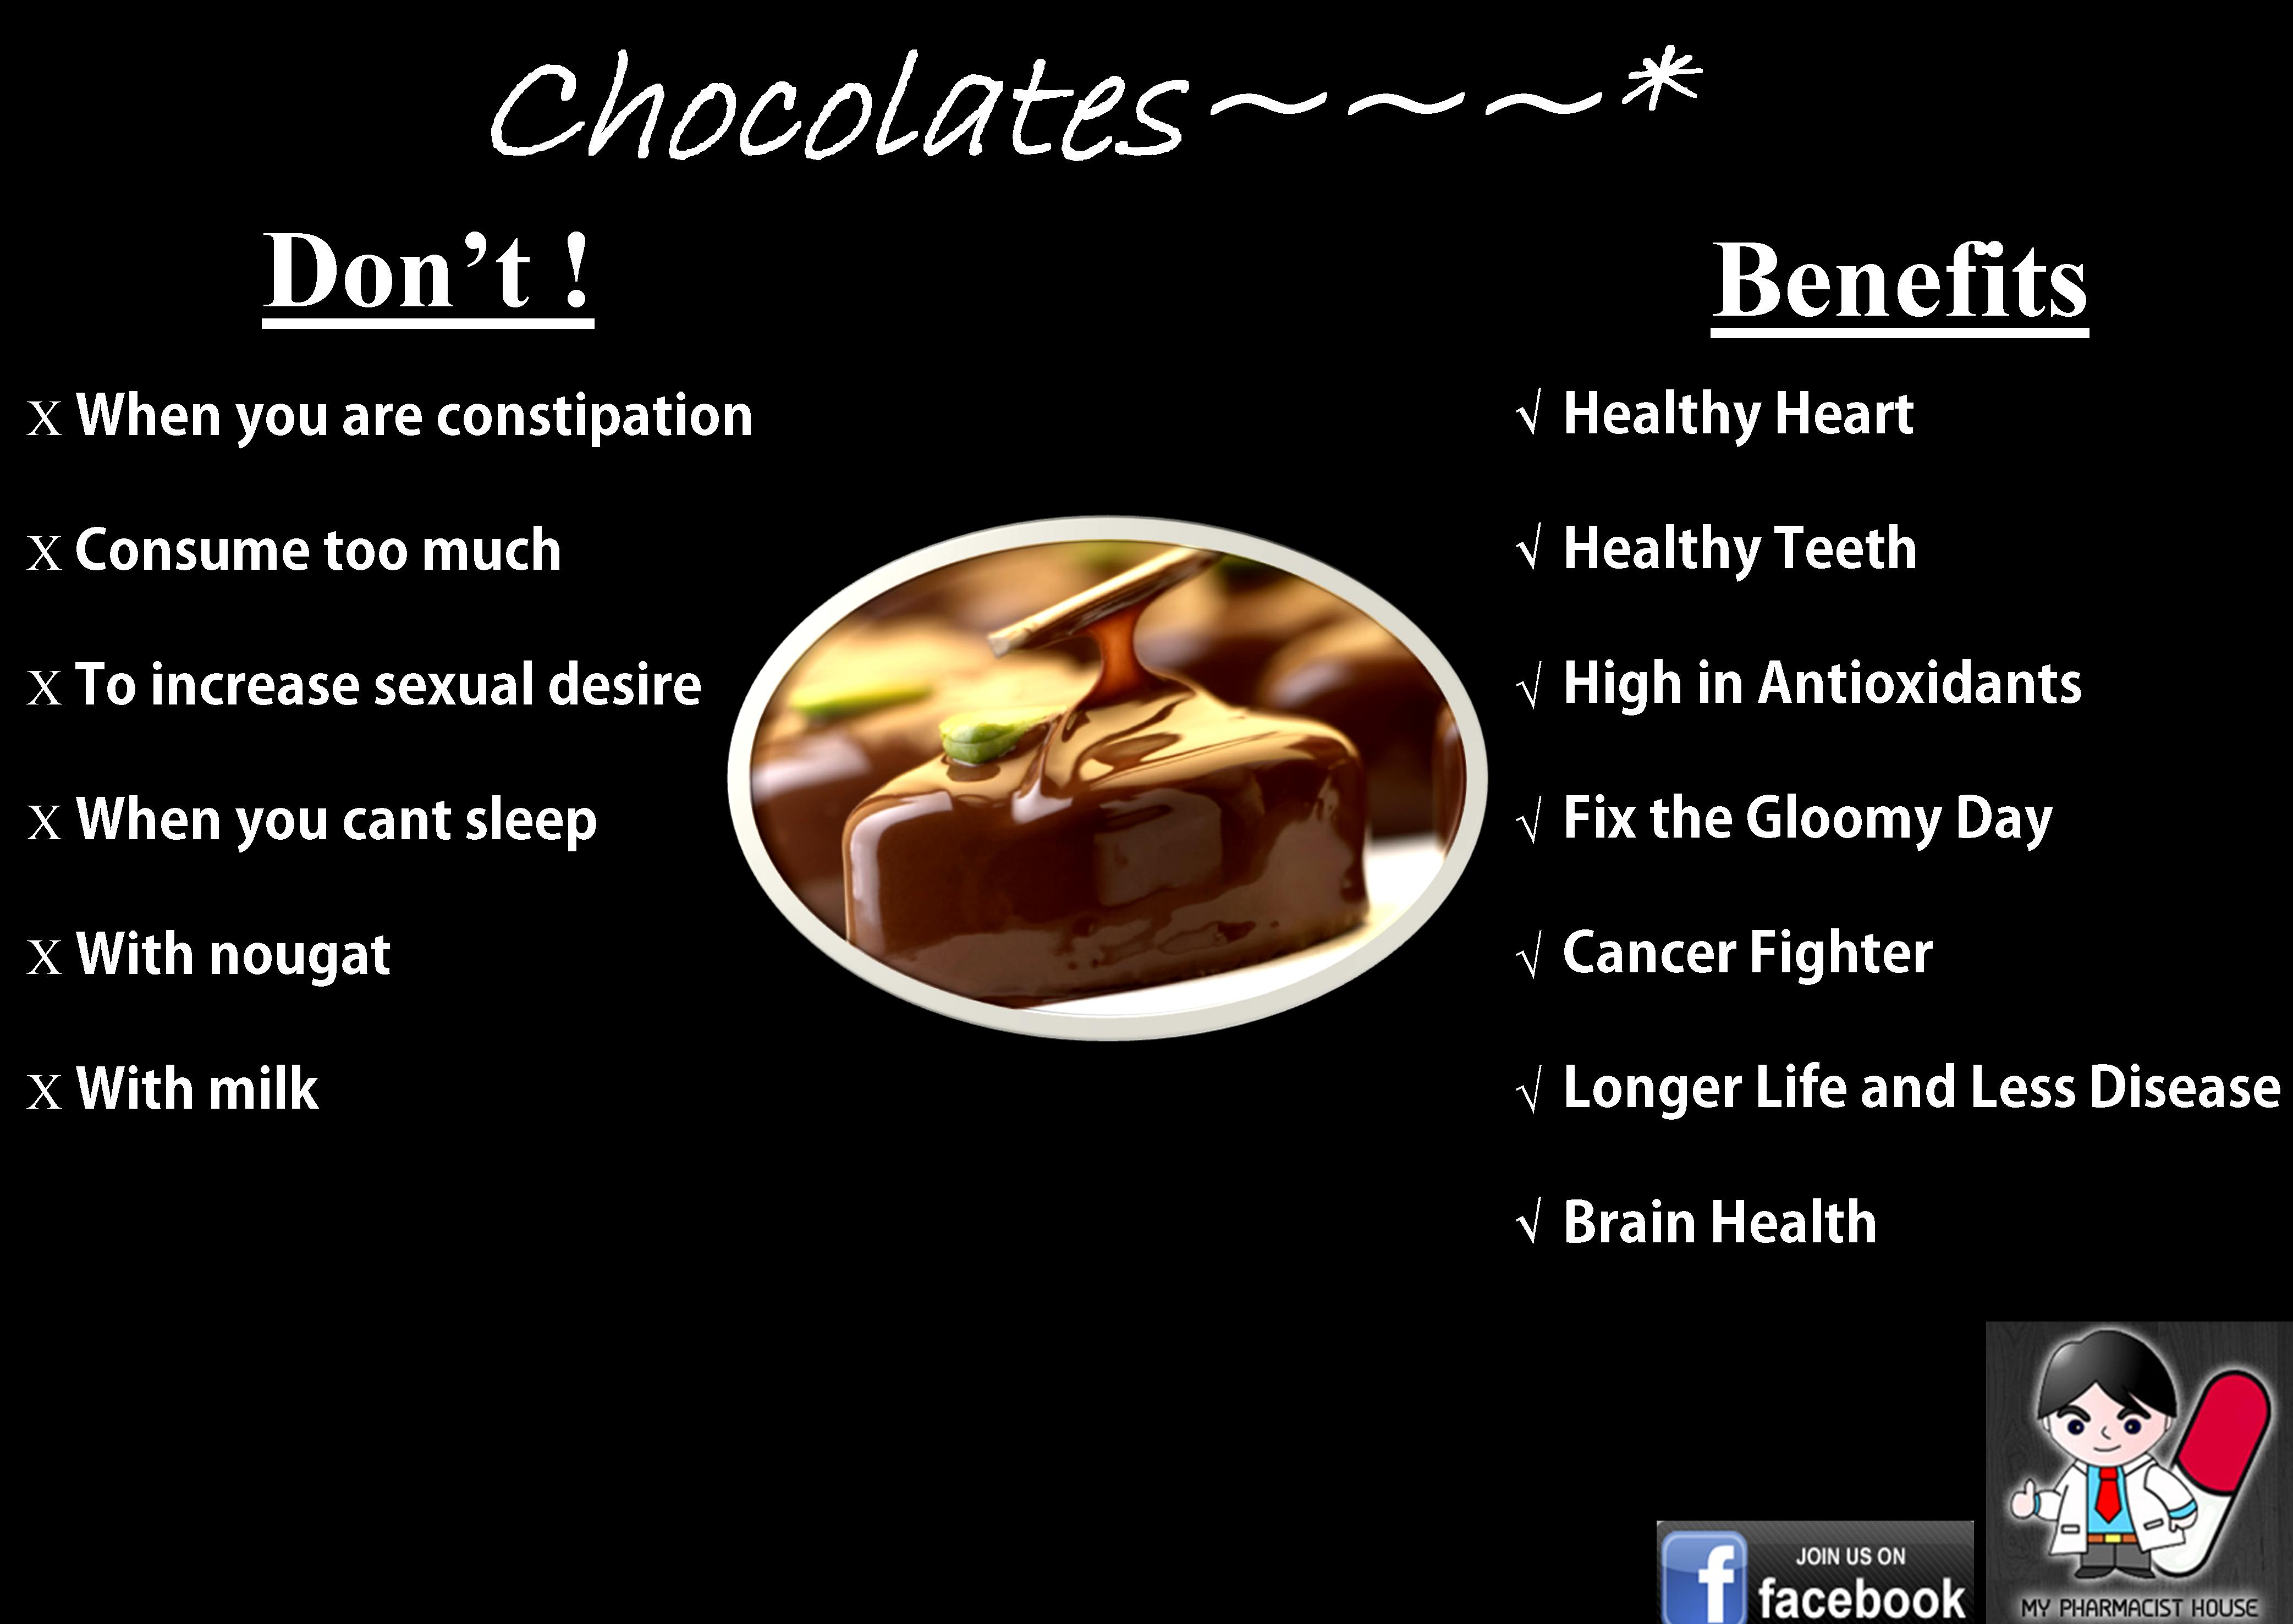 Chocolates and its Benefits | My Pharmacist House